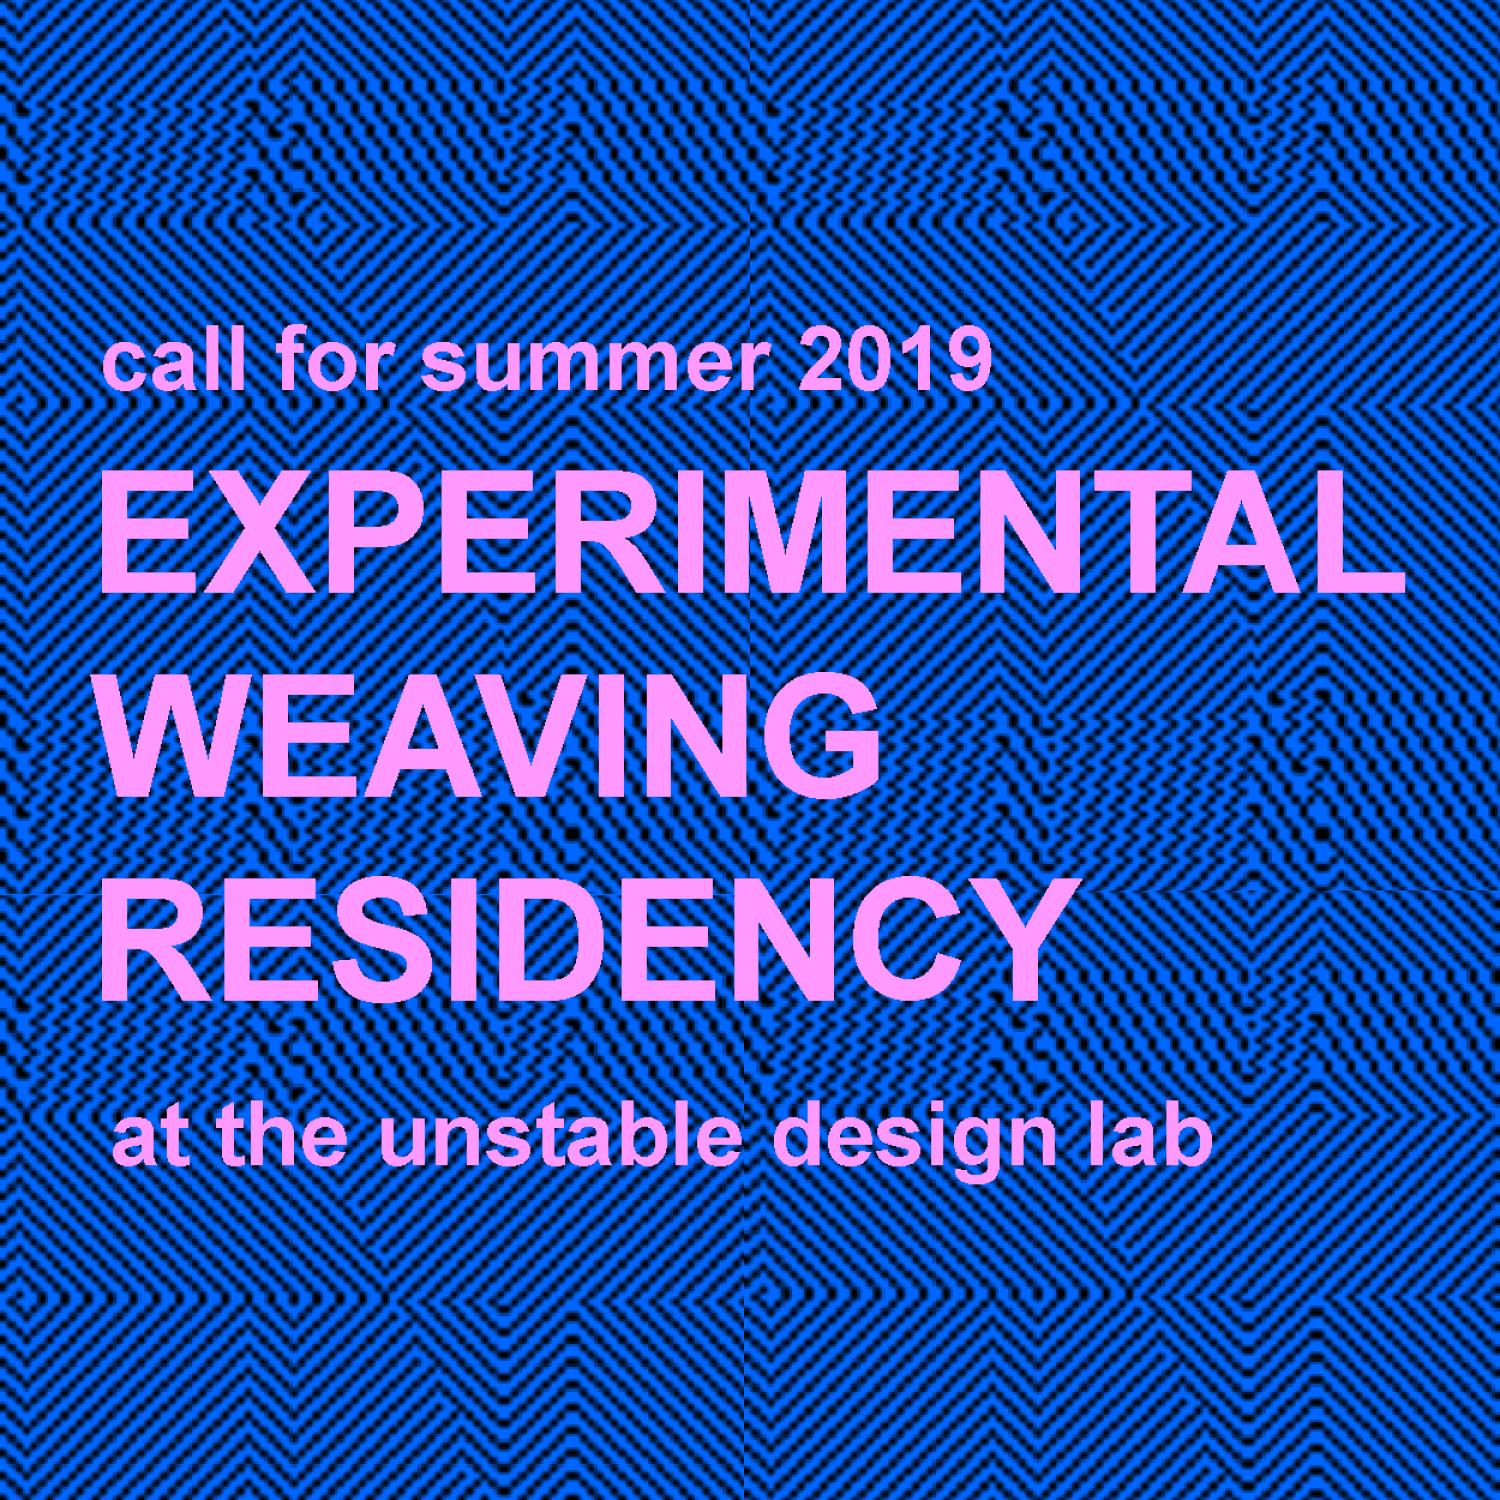 The photo says Experimental Weaving Residency